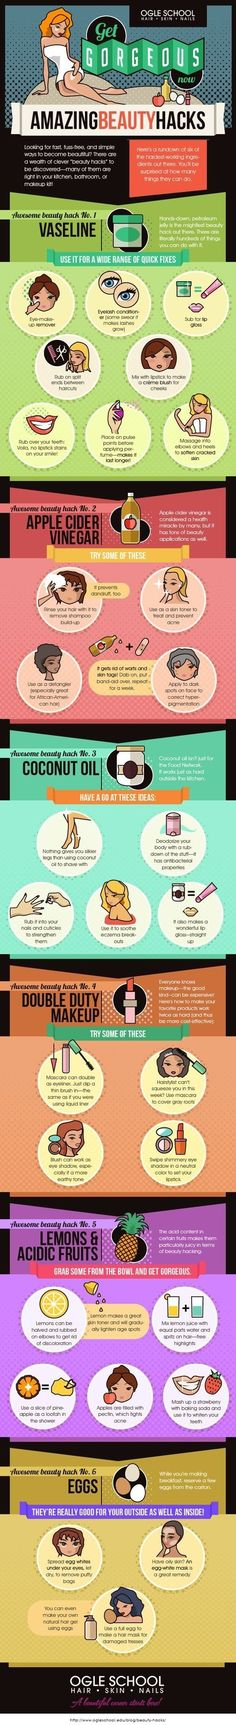 Six awesome beauty hacks using Vaseline, apple cider vinegar, coconut oil, acidic fruits, eggs and double duty makeup.. :)